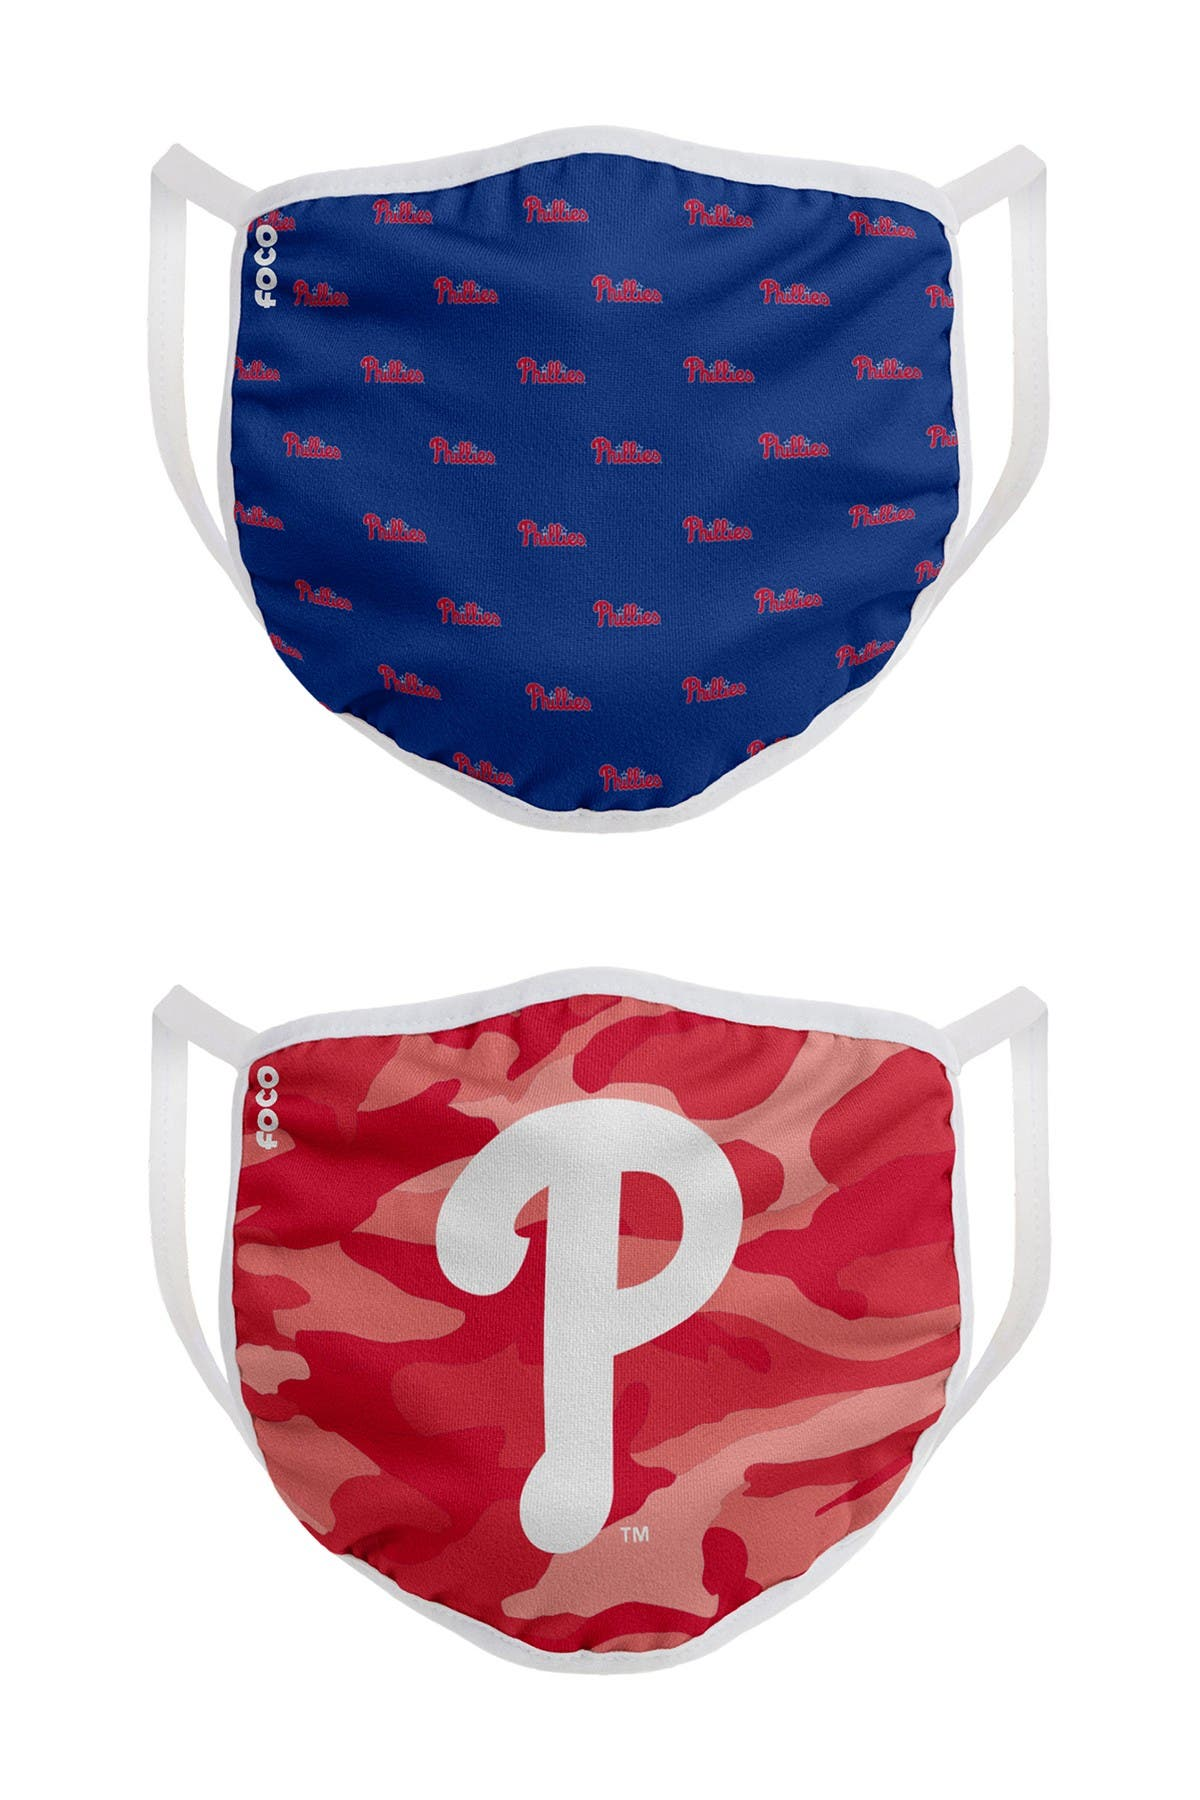 Image of FOCO MLB Philadelphia Phillies Clutch Printed Face Cover - Pack of 2